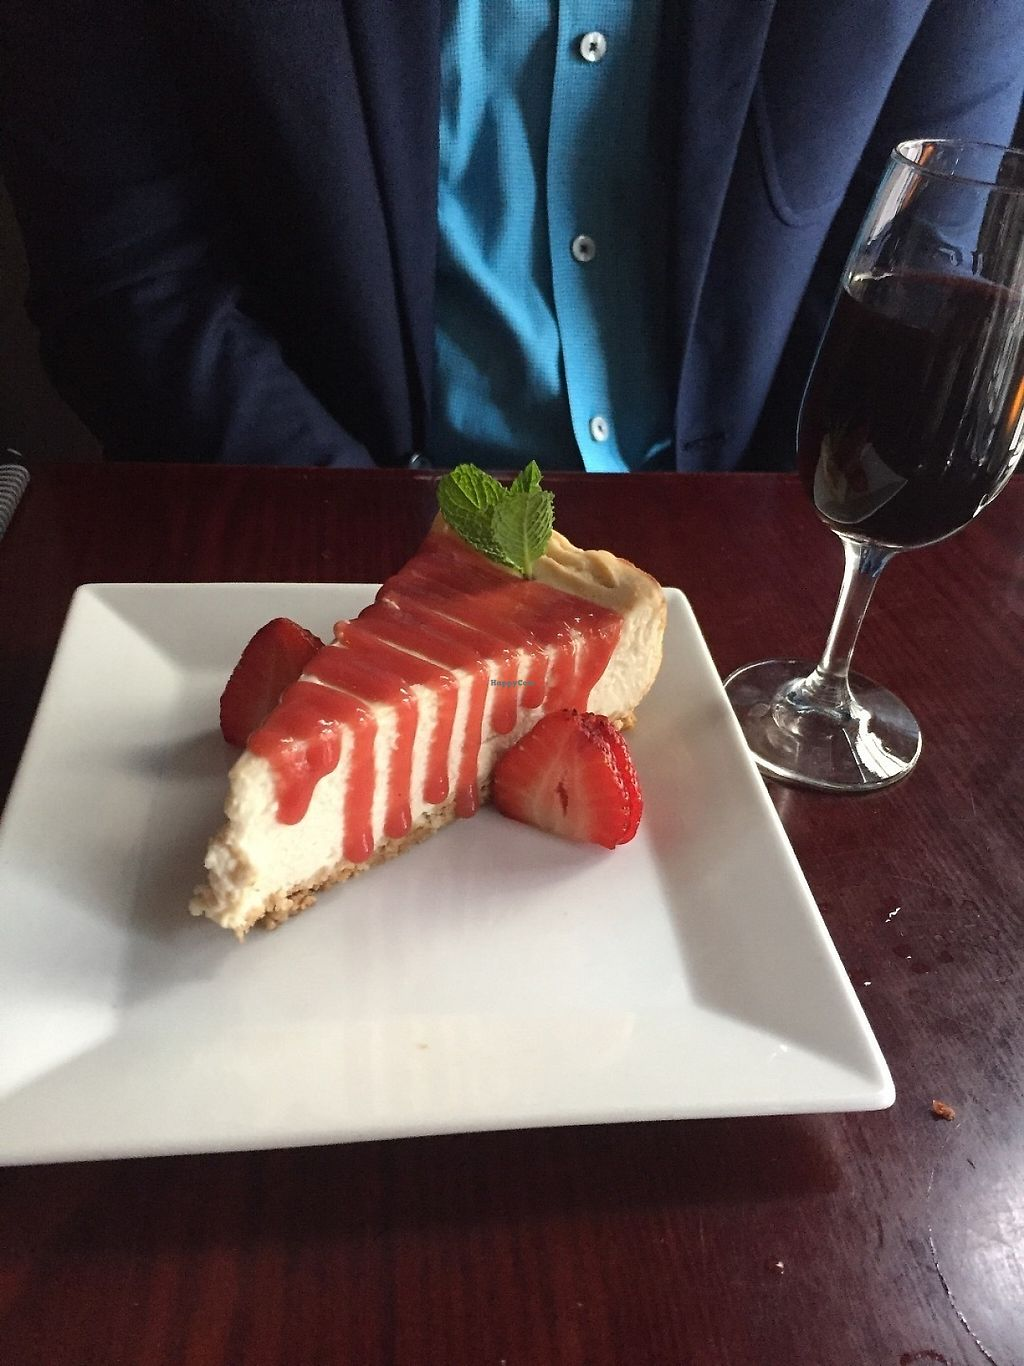 """Photo of Blossom Restaurant  by <a href=""""/members/profile/KaitlynnGill"""">KaitlynnGill</a> <br/>Strawberry cheesecake  <br/> May 1, 2017  - <a href='/contact/abuse/image/6097/254764'>Report</a>"""